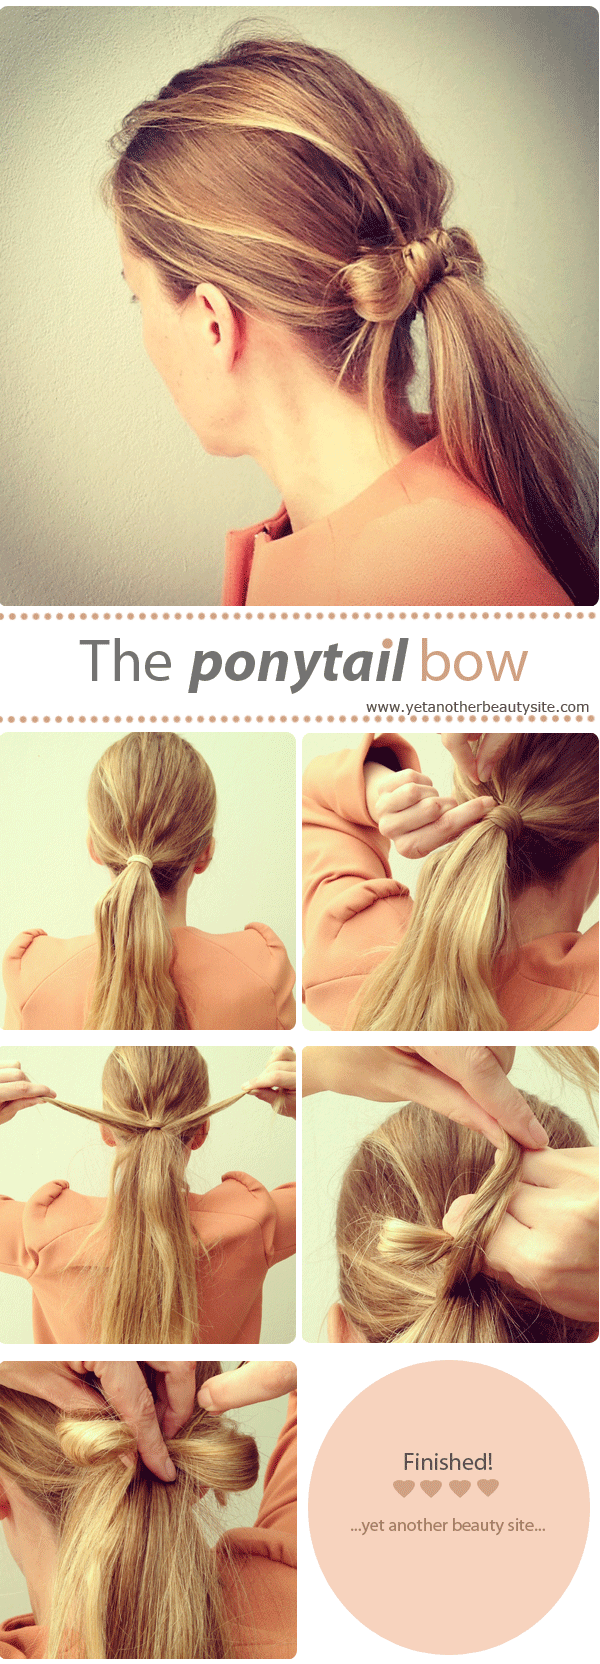 theponytailbow